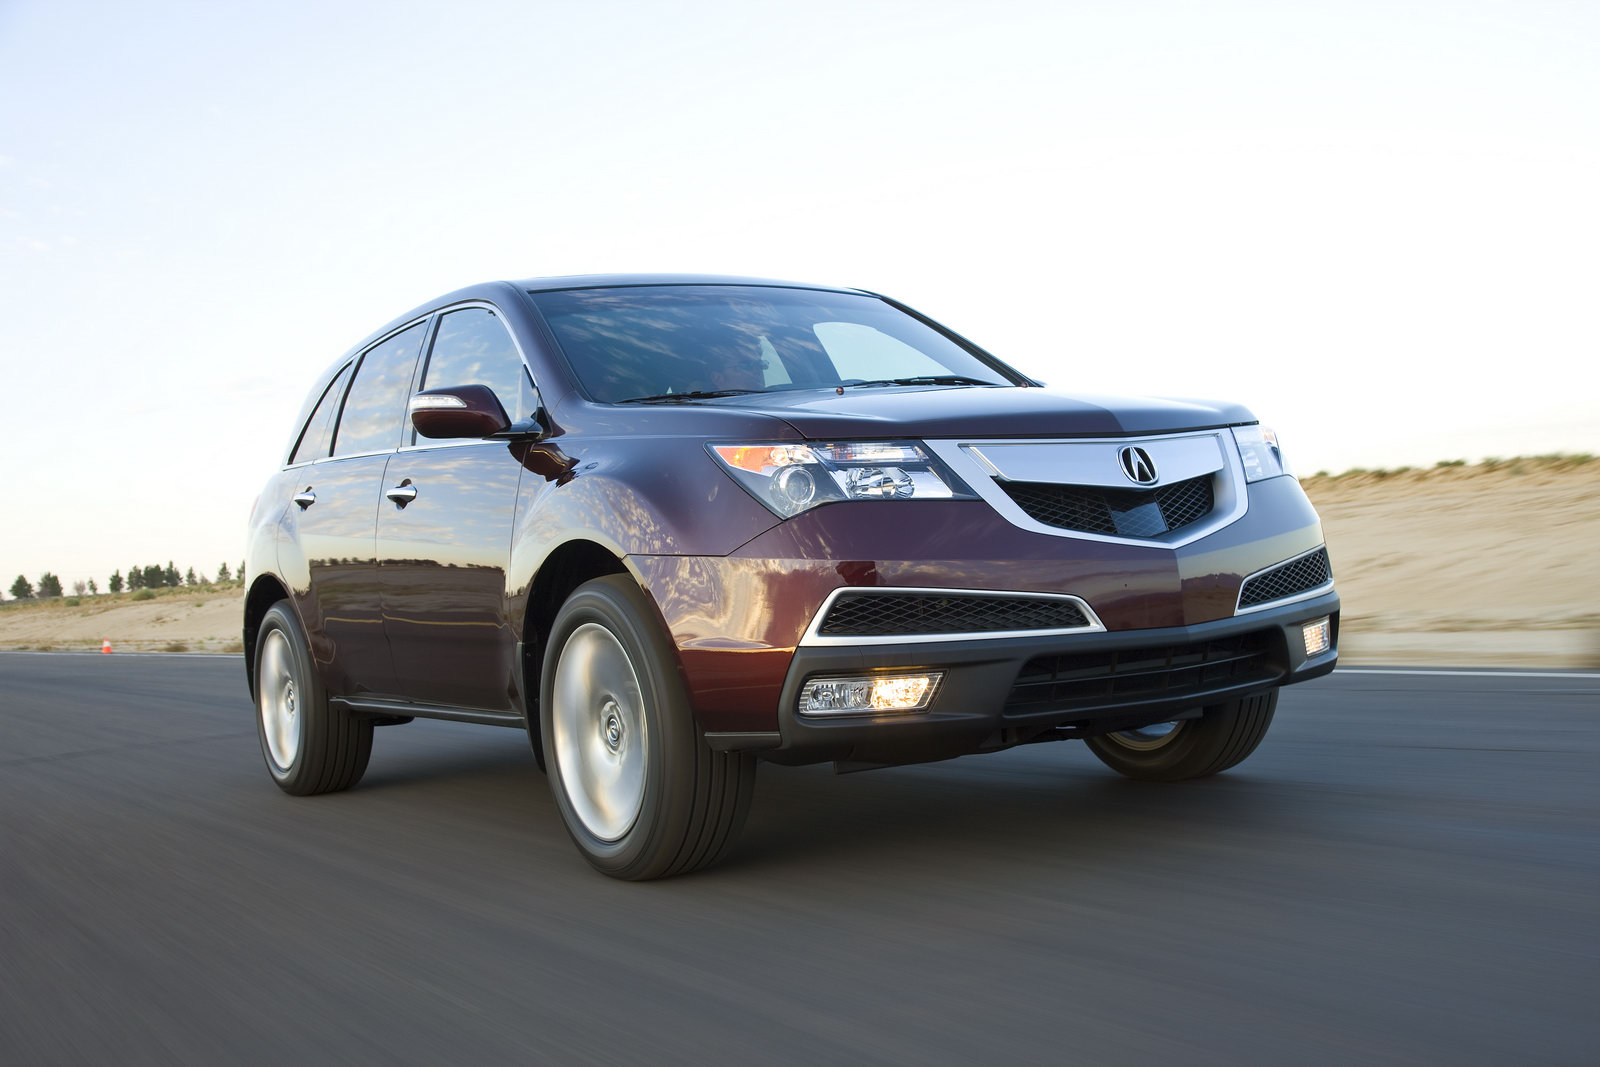 2010 Acura MDX 18 Mildly Facelifted 2010 Acura MDX Priced from $43,040 in the States